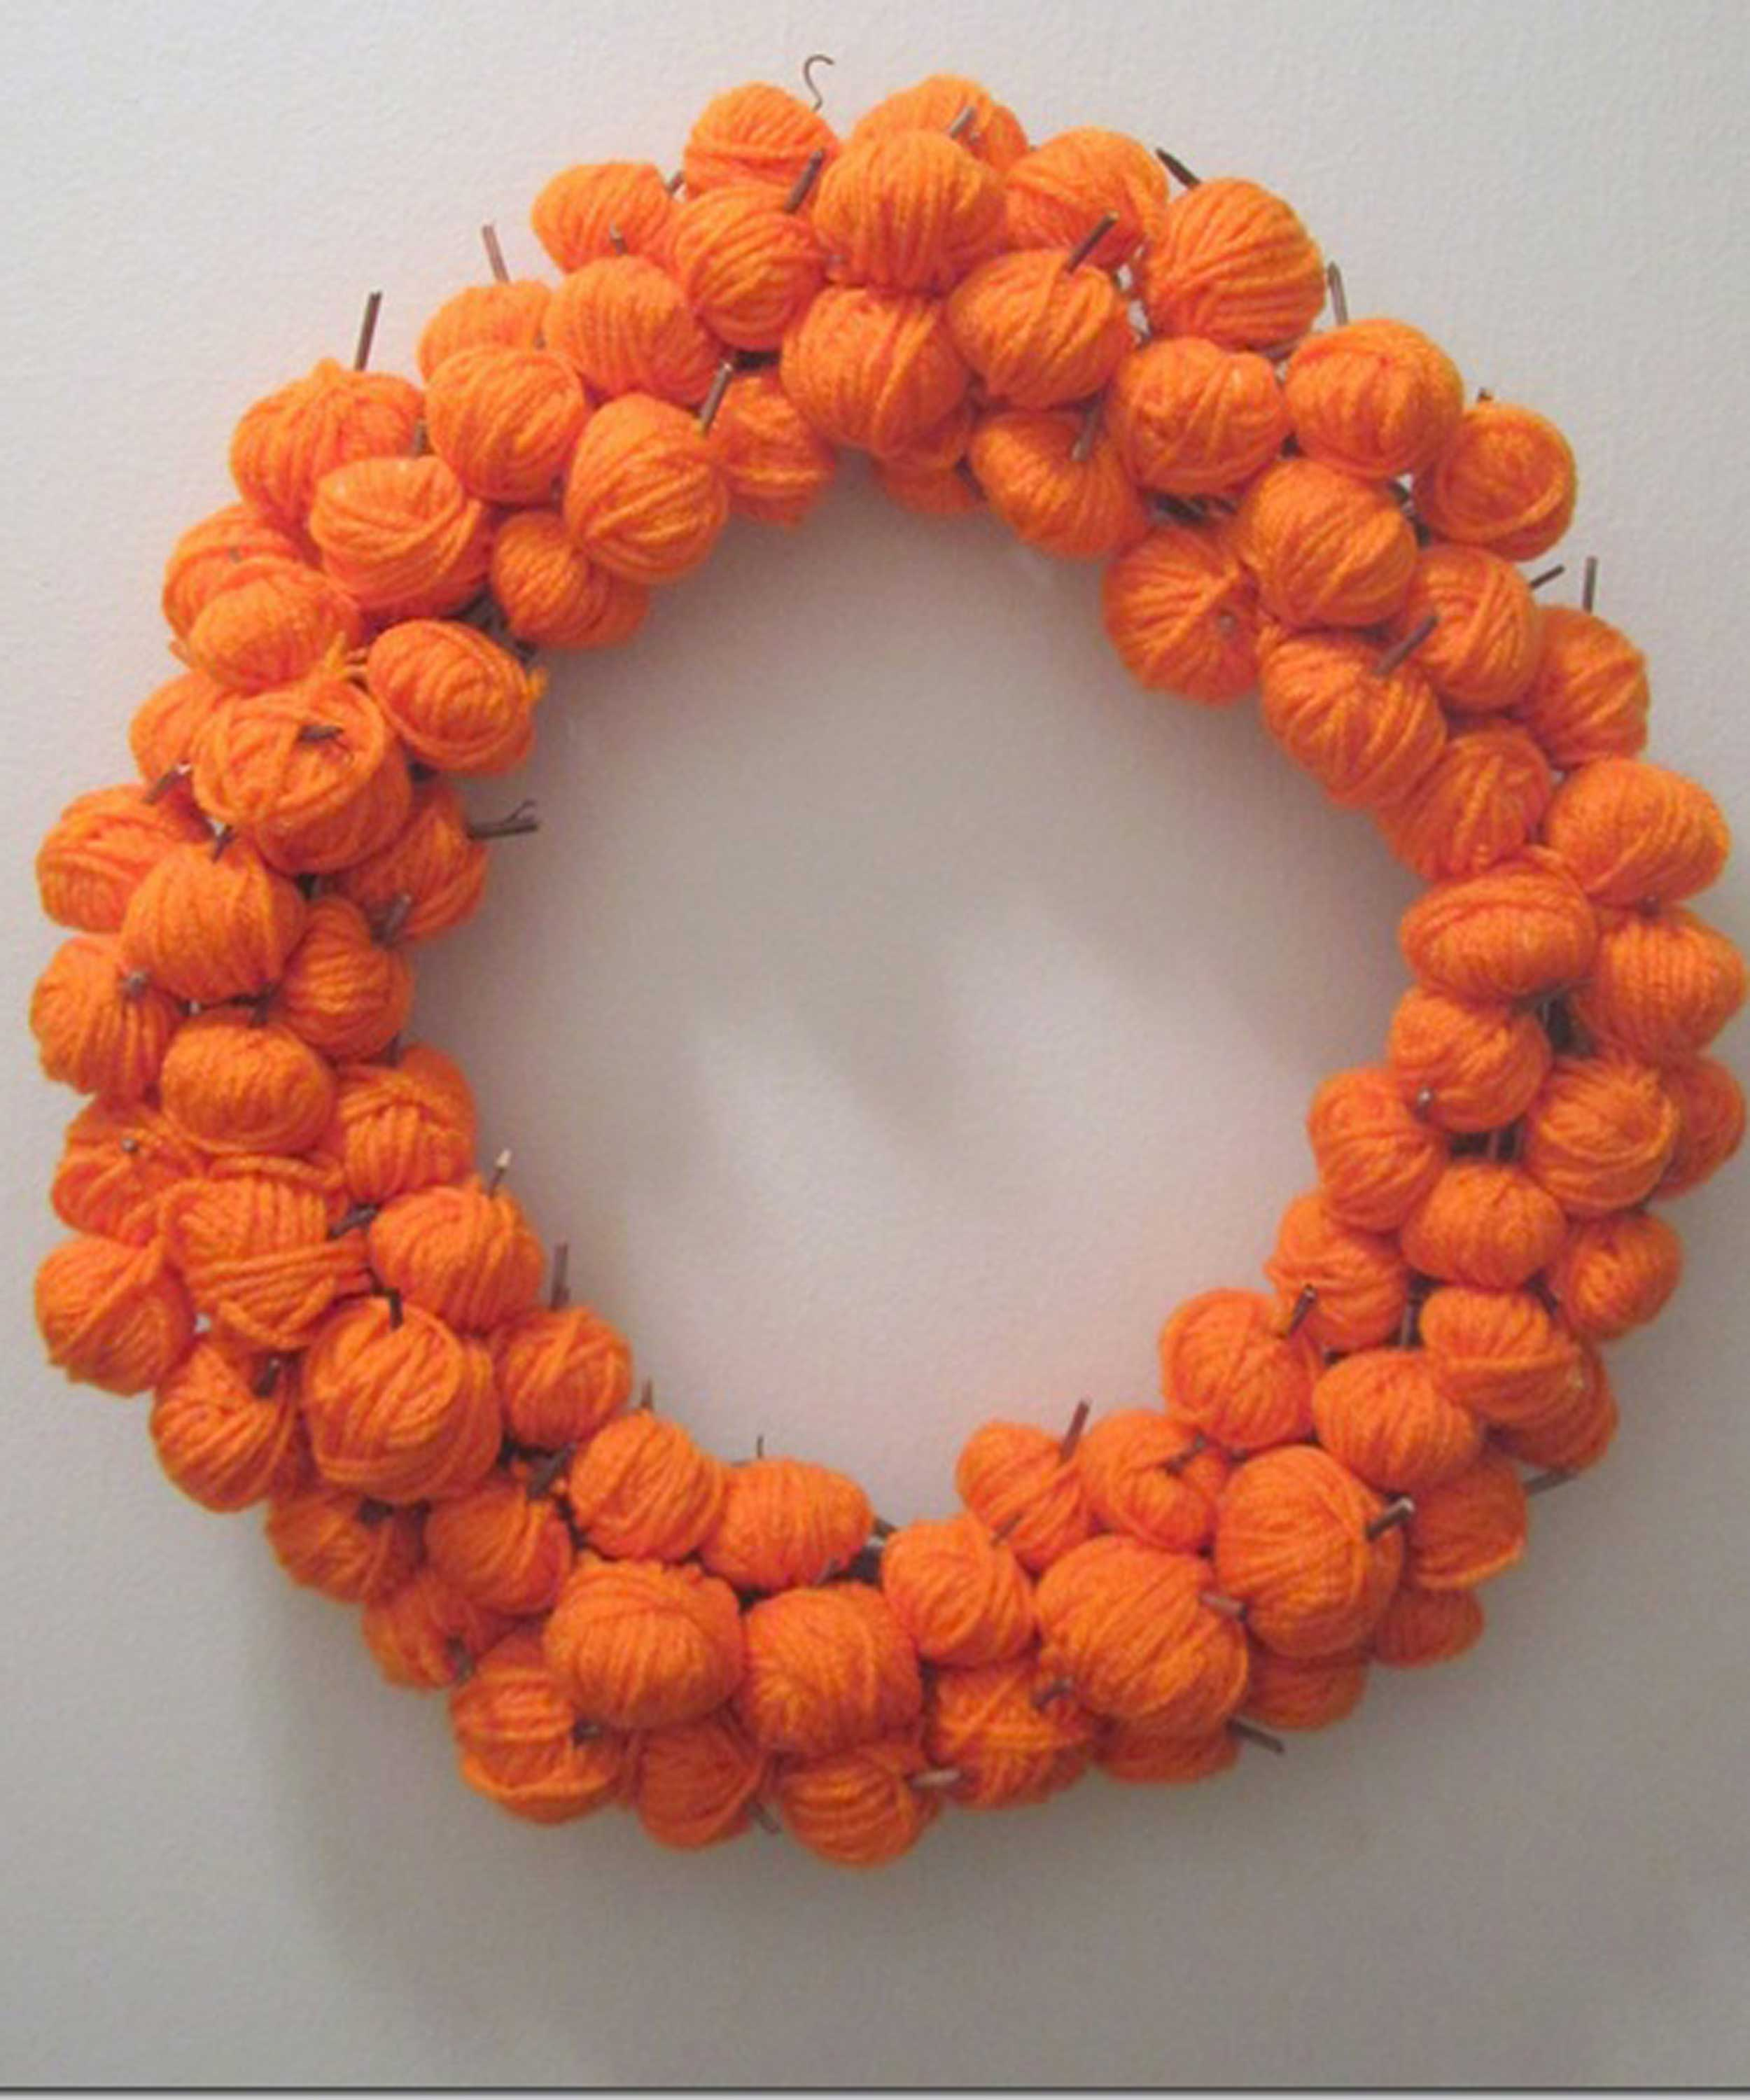 Diy halloween wreath - 30 Diy Halloween Wreaths How To Make Halloween Door Decorations Ideas